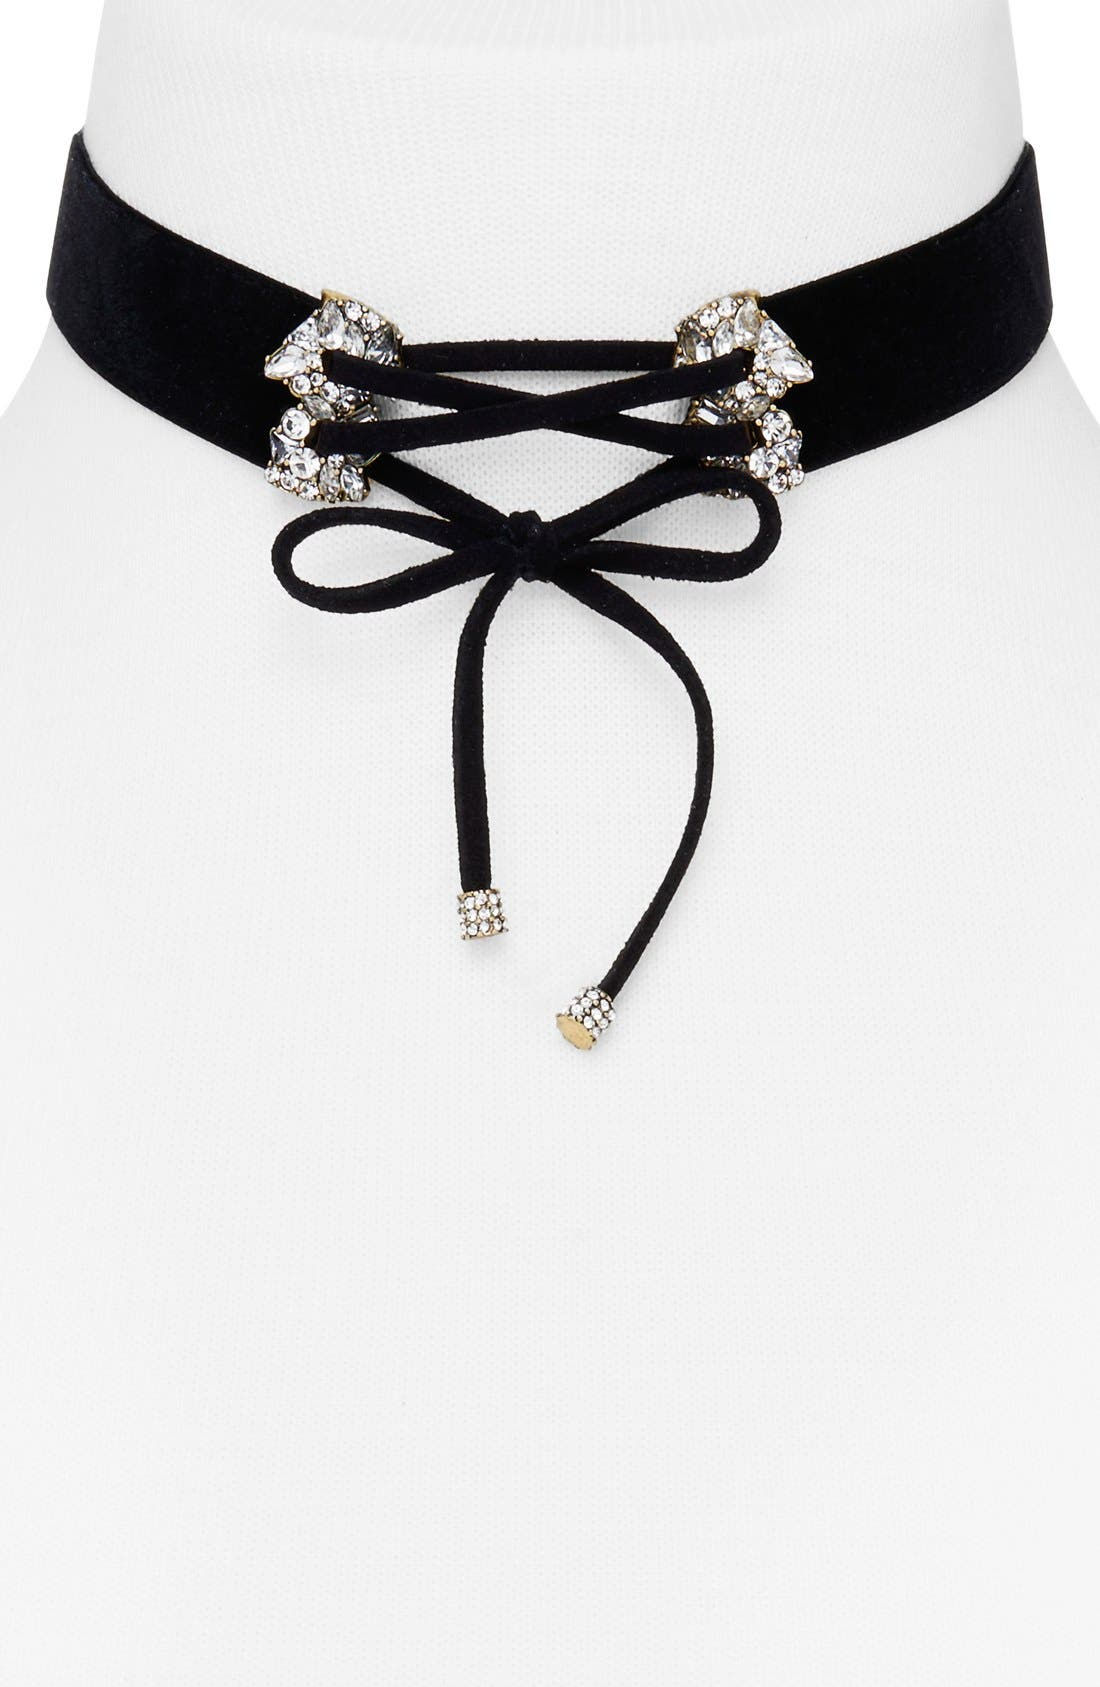 Alternate Image 1 Selected - BaubleBar 'Ottoline' Velvet & Crystal Choker